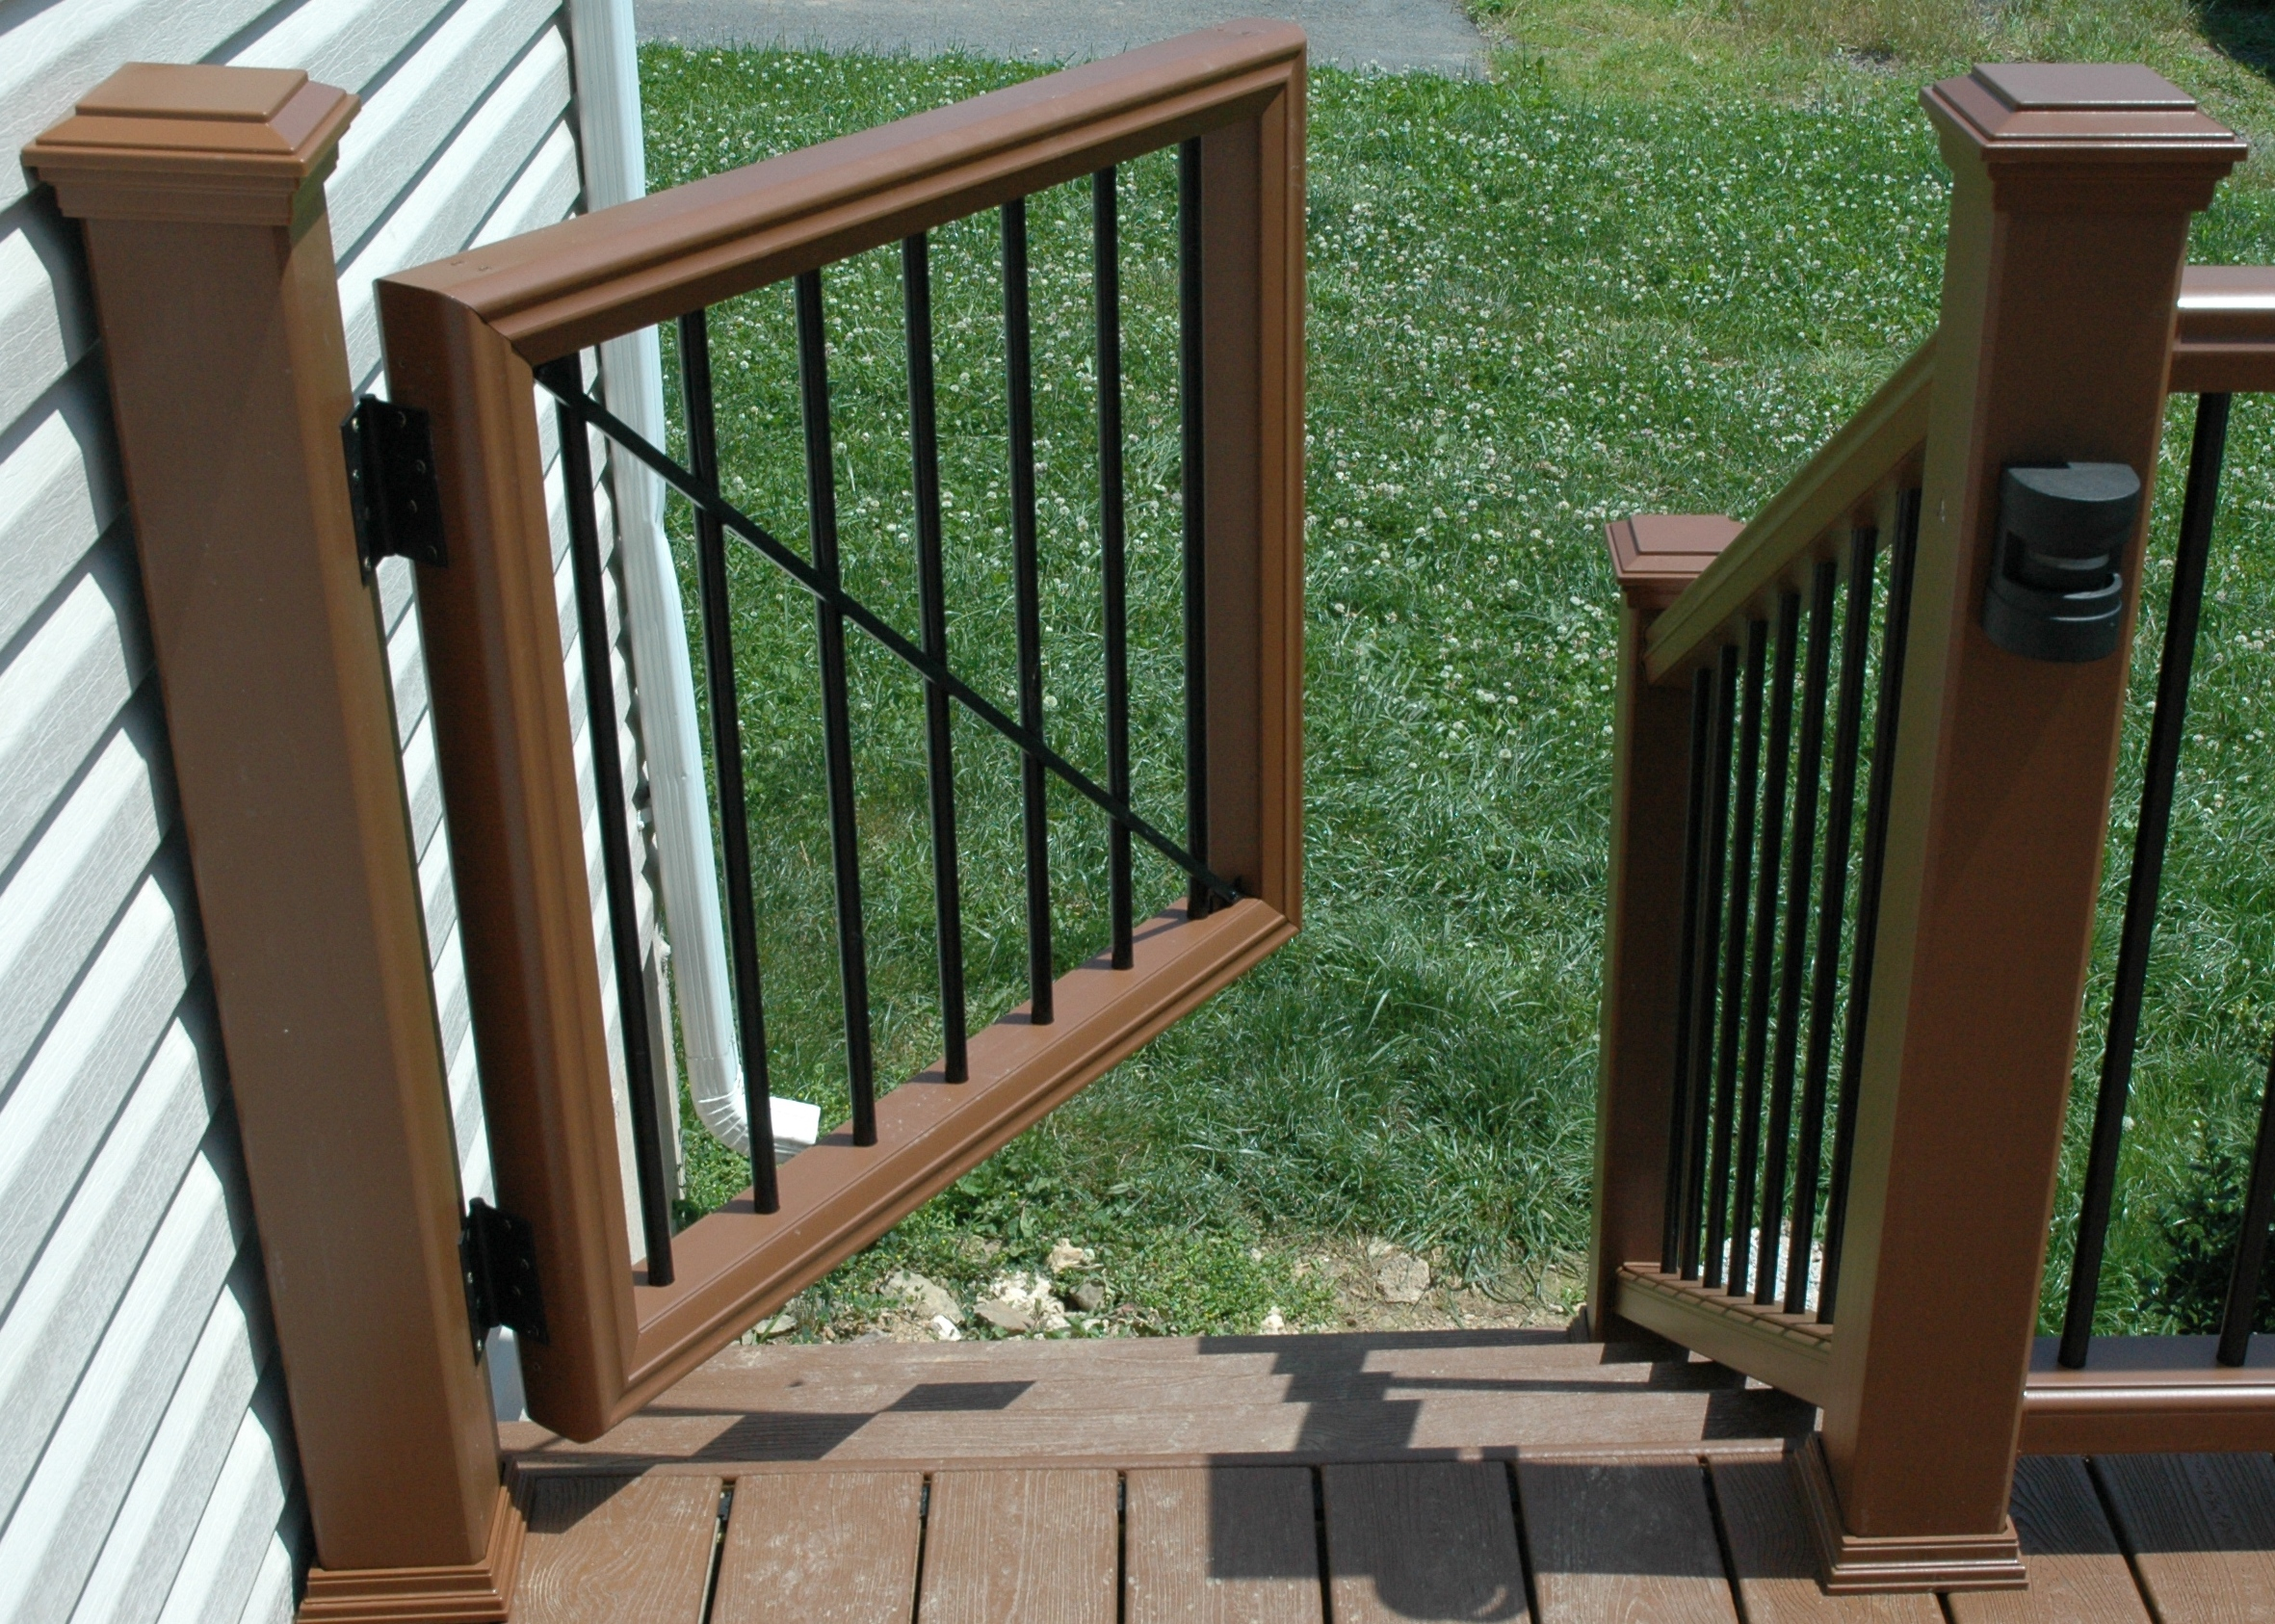 Deck railing with gate